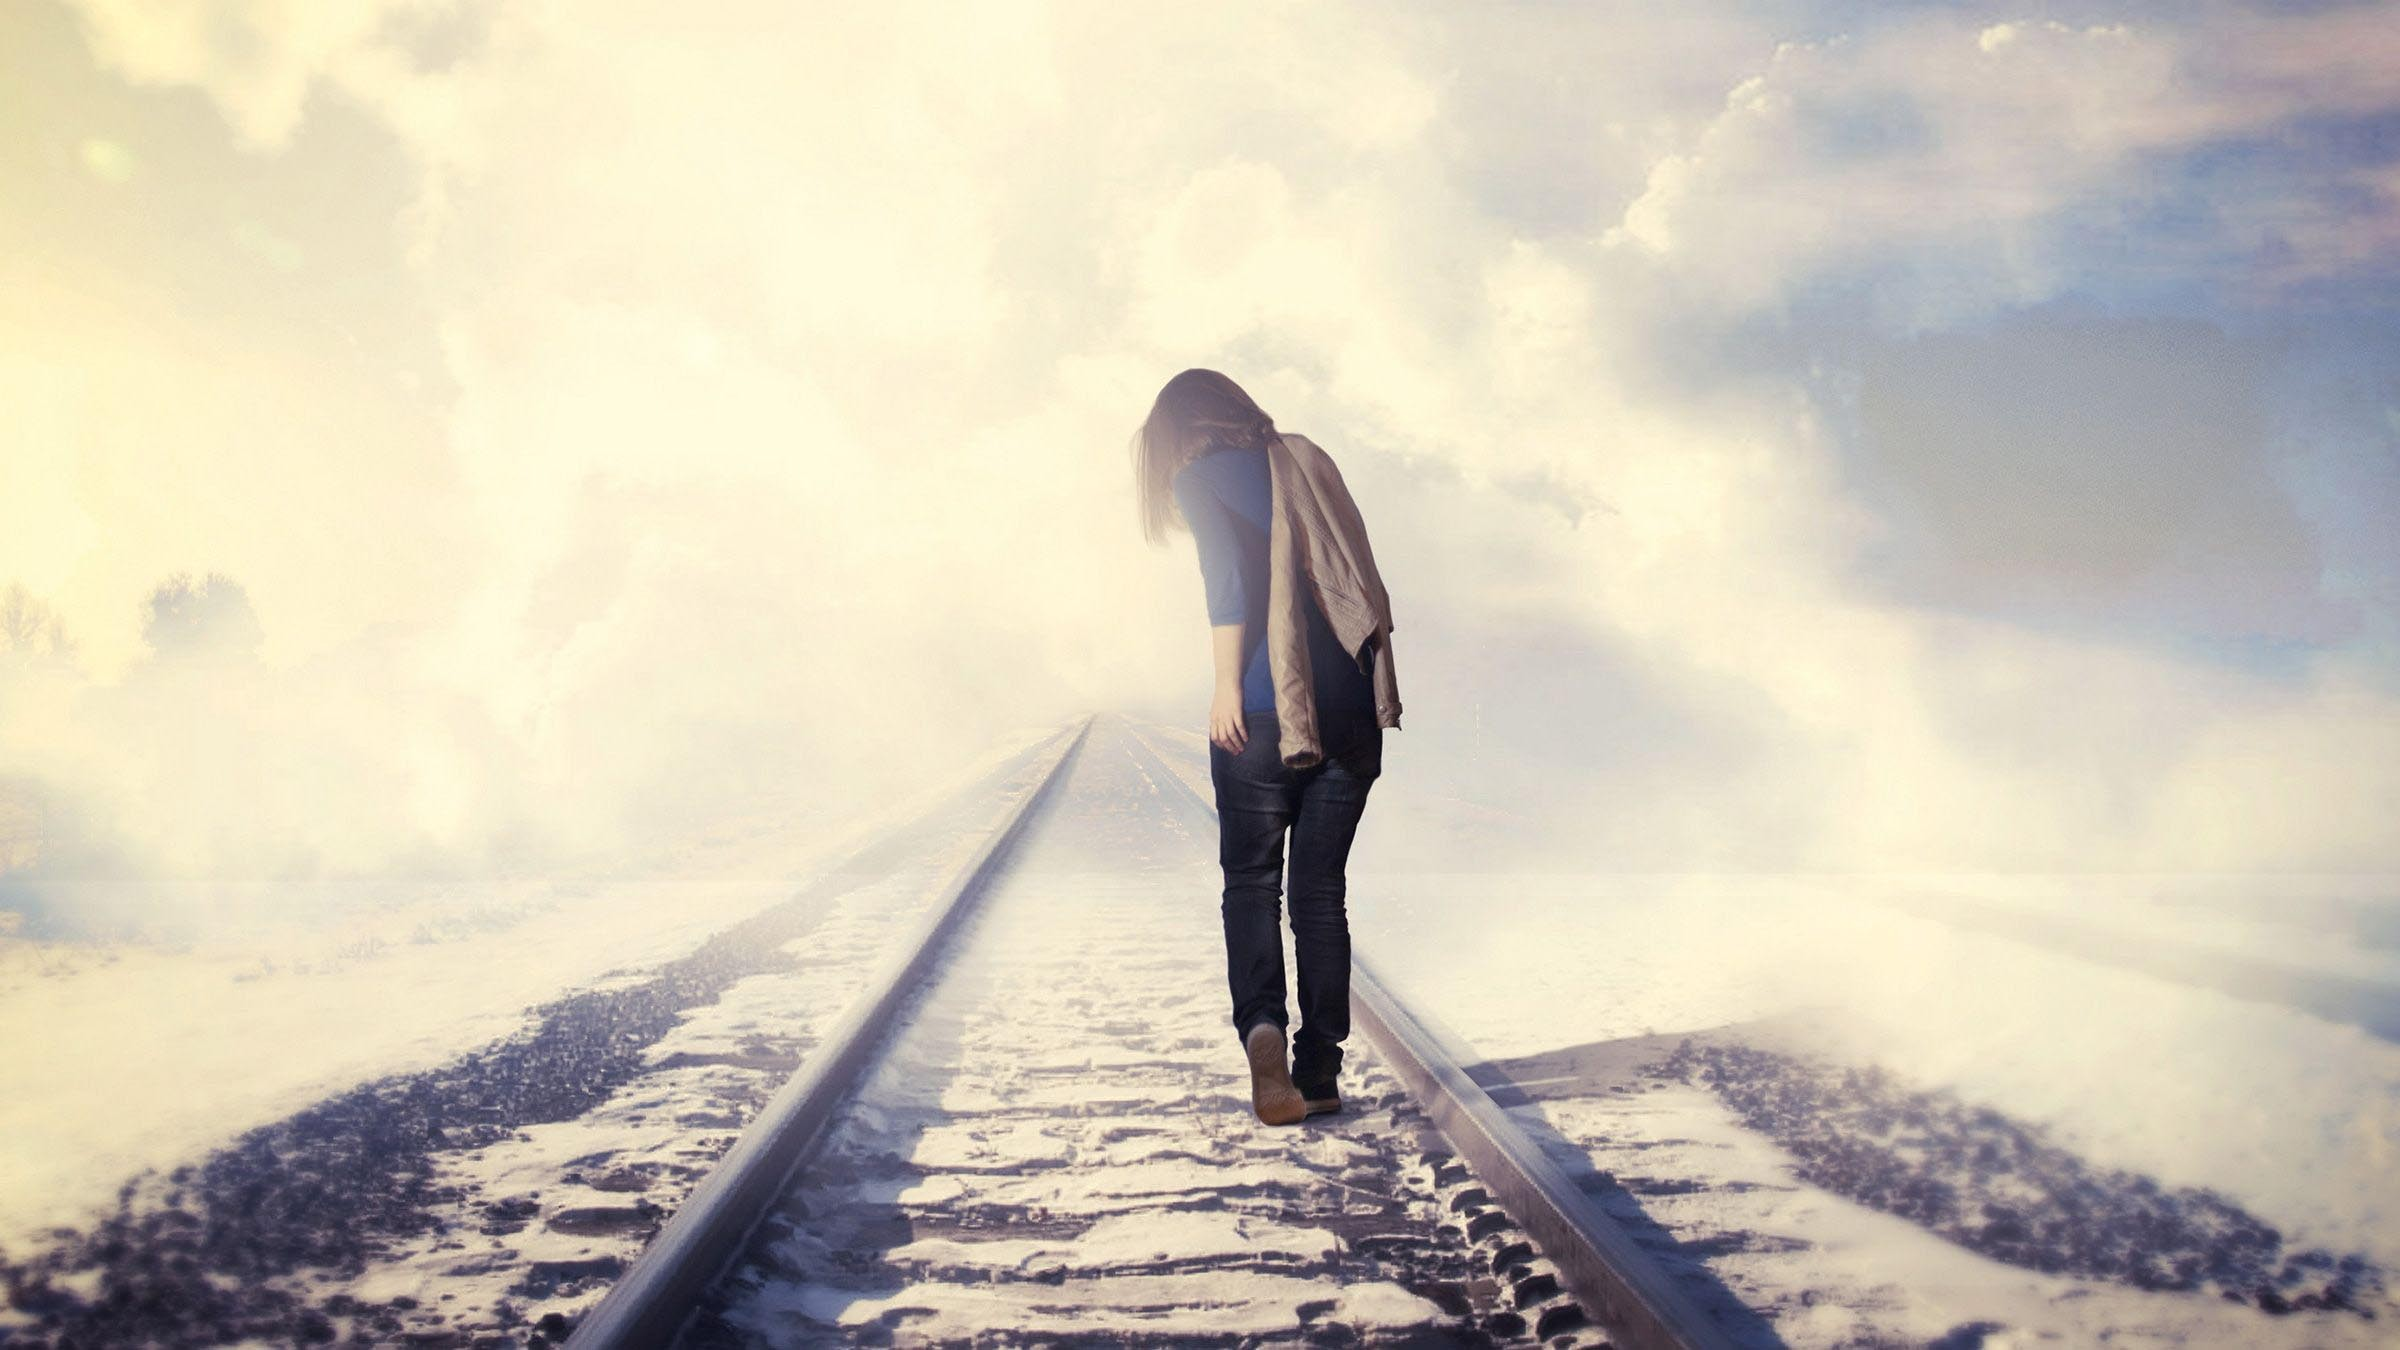 How to Free Yourself from Fear and Worries by Walking Directly Into Them